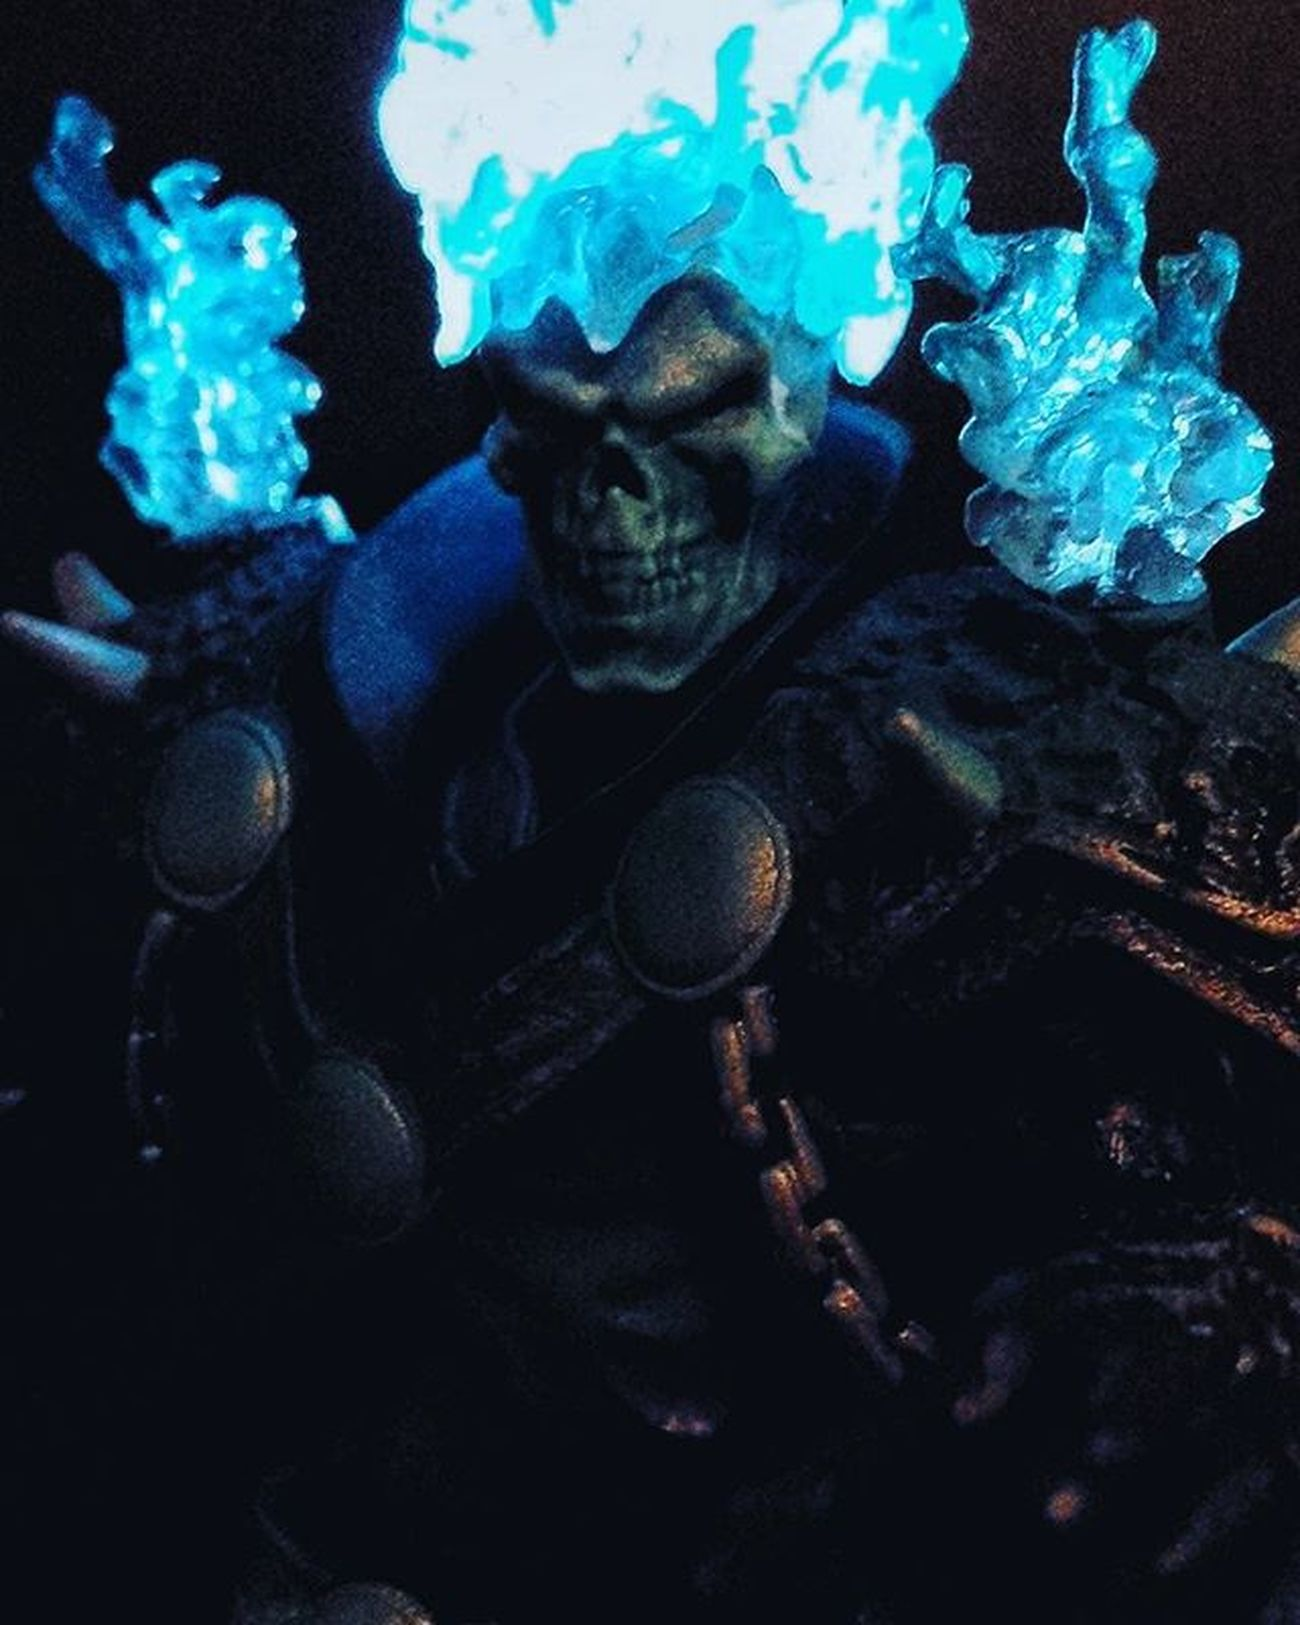 Shot inspired by @_geekspot_ Check out his shot if you want a cooler-looking pic of the Ghost Rider. ➖➖➖➖➖➖➖➖➖➖➖➖➖➖➖➖➖➖➖➖ Marvel Marvellegends Ghostrider Toyfigures ToyPoses Toyphotography Toyelites Toyslagram Toyunion Toyartistry Toyartistry_elite Toyslagram_toyartistry_dual_feature Toysnapshot Toyboners Toys4Me Rebeltoysclub Toygroup_alliance Ata_dreadnoughts ATA_MARVEL Anarchyalliance Toyphotogallery Toysrmydrug Toys4life Toysyn Jj_toys TheFigureVerse EpicToyArt